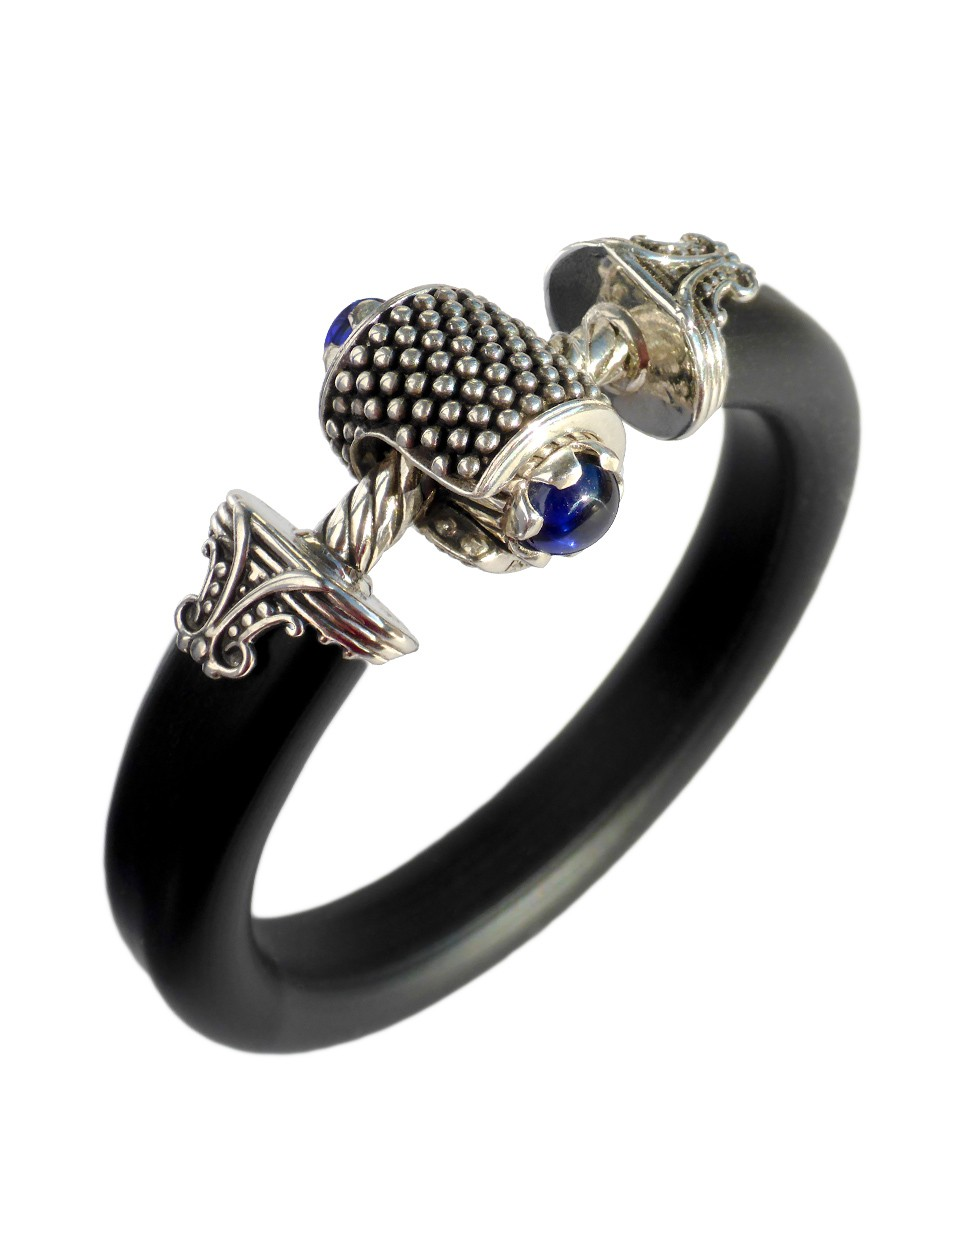 JockRing OMEN in Imperial blue. Solid silver jeweled cock ring